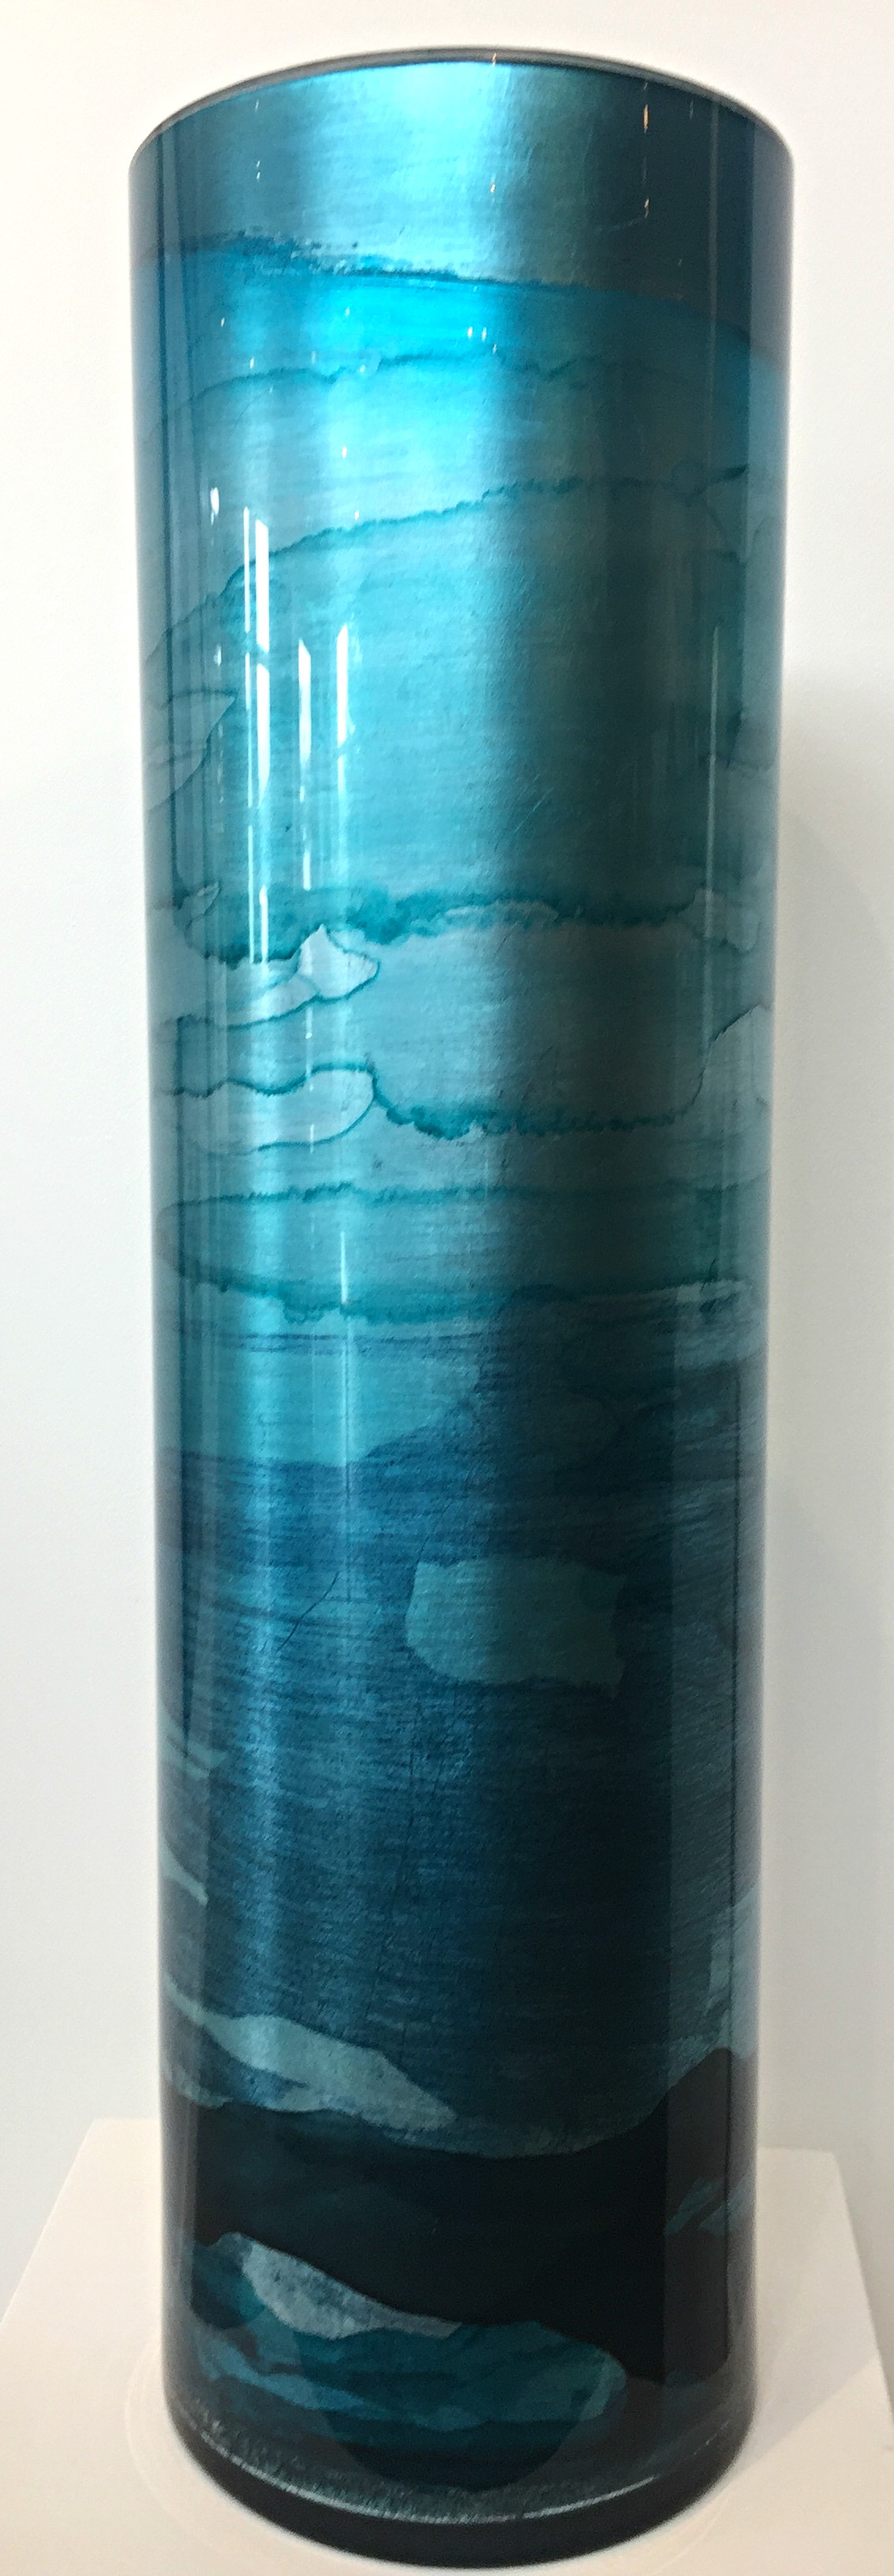 Blue Gilded Vase by David Graff | Effusion Art Gallery + Cast Glass Studio, Invermere BC